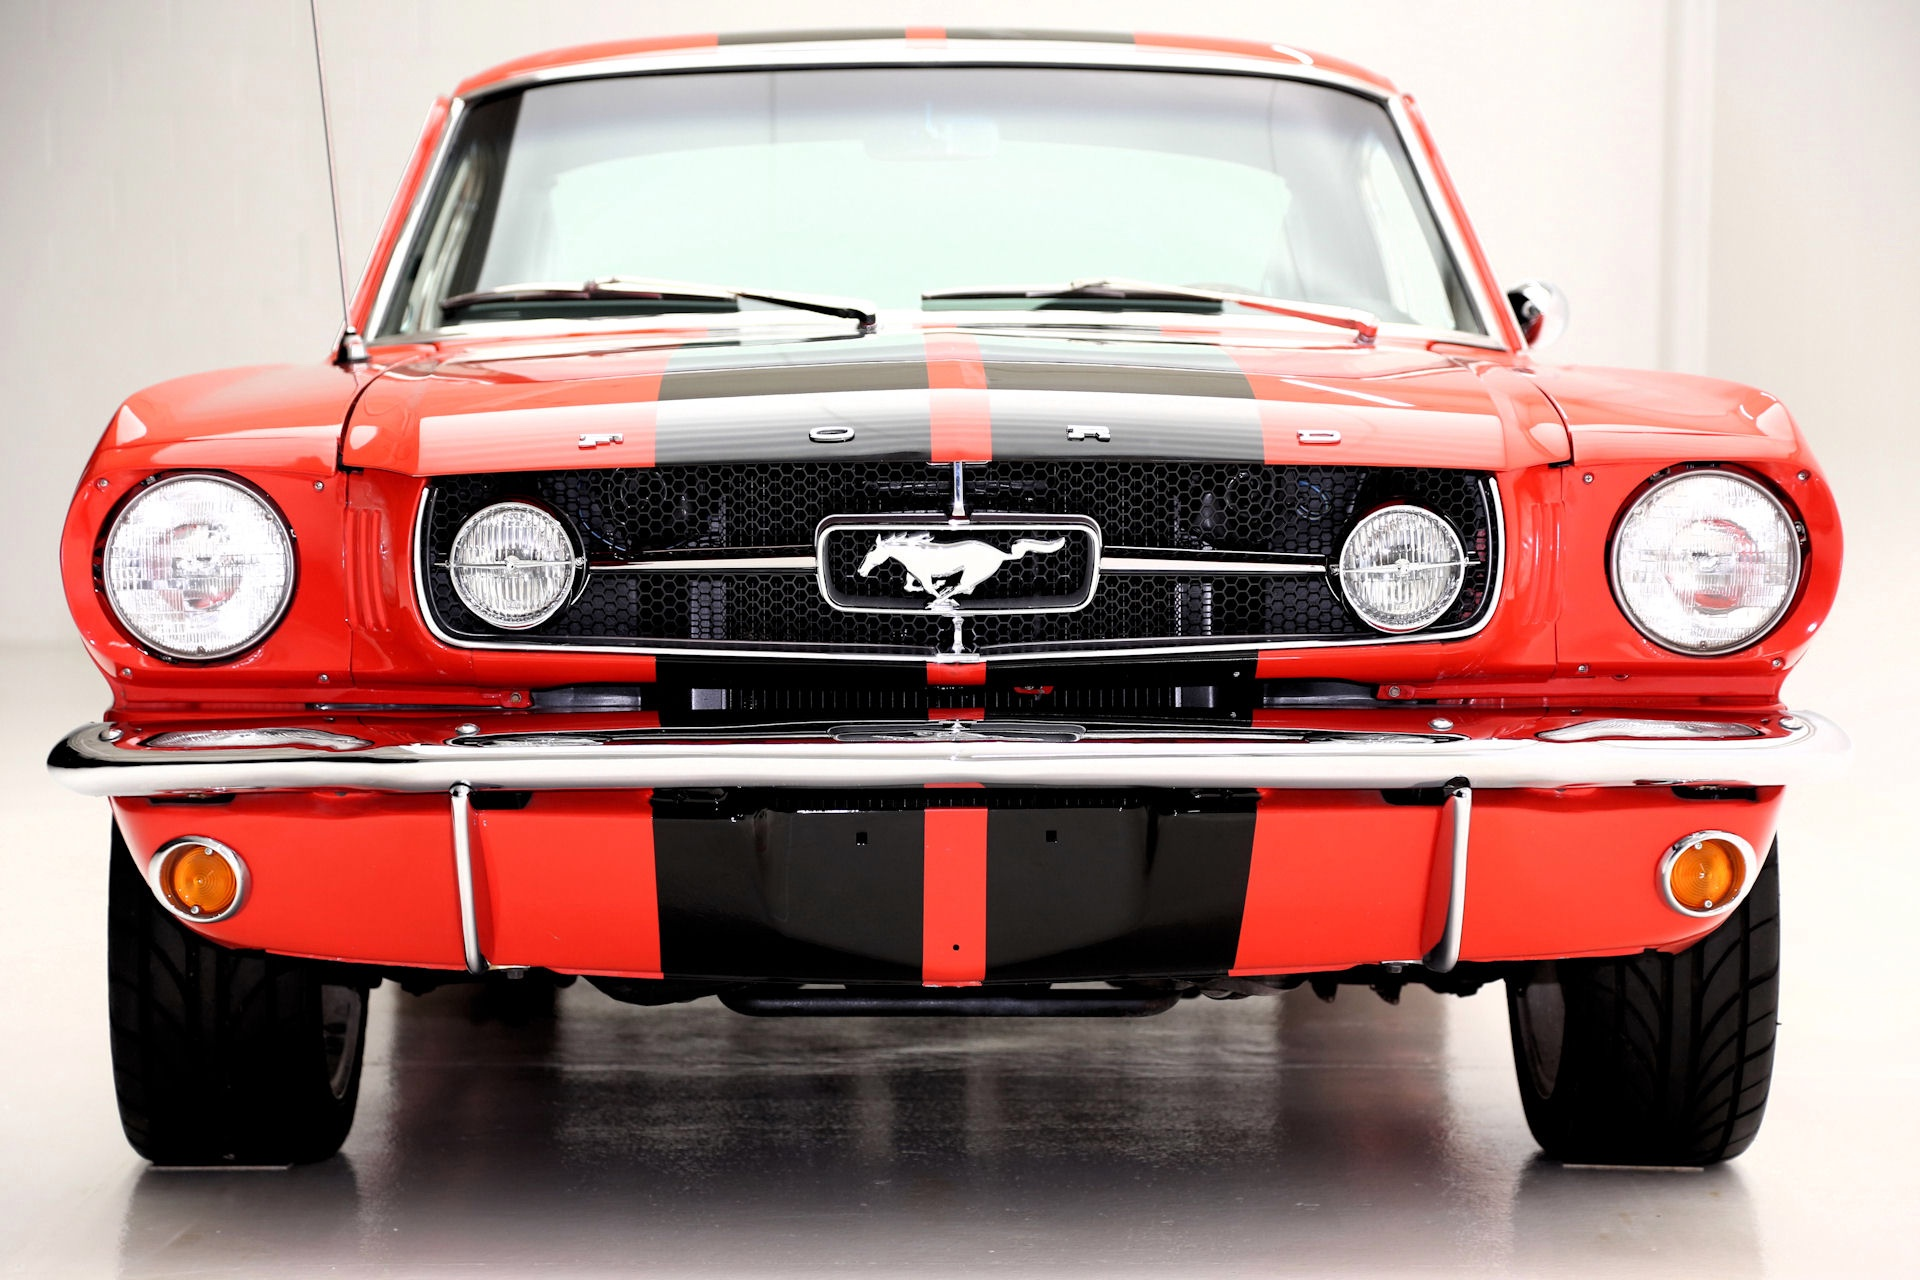 1965 Ford Mustang Fastback Poppy Red Blk Interior American Dream Machines Classic Cars